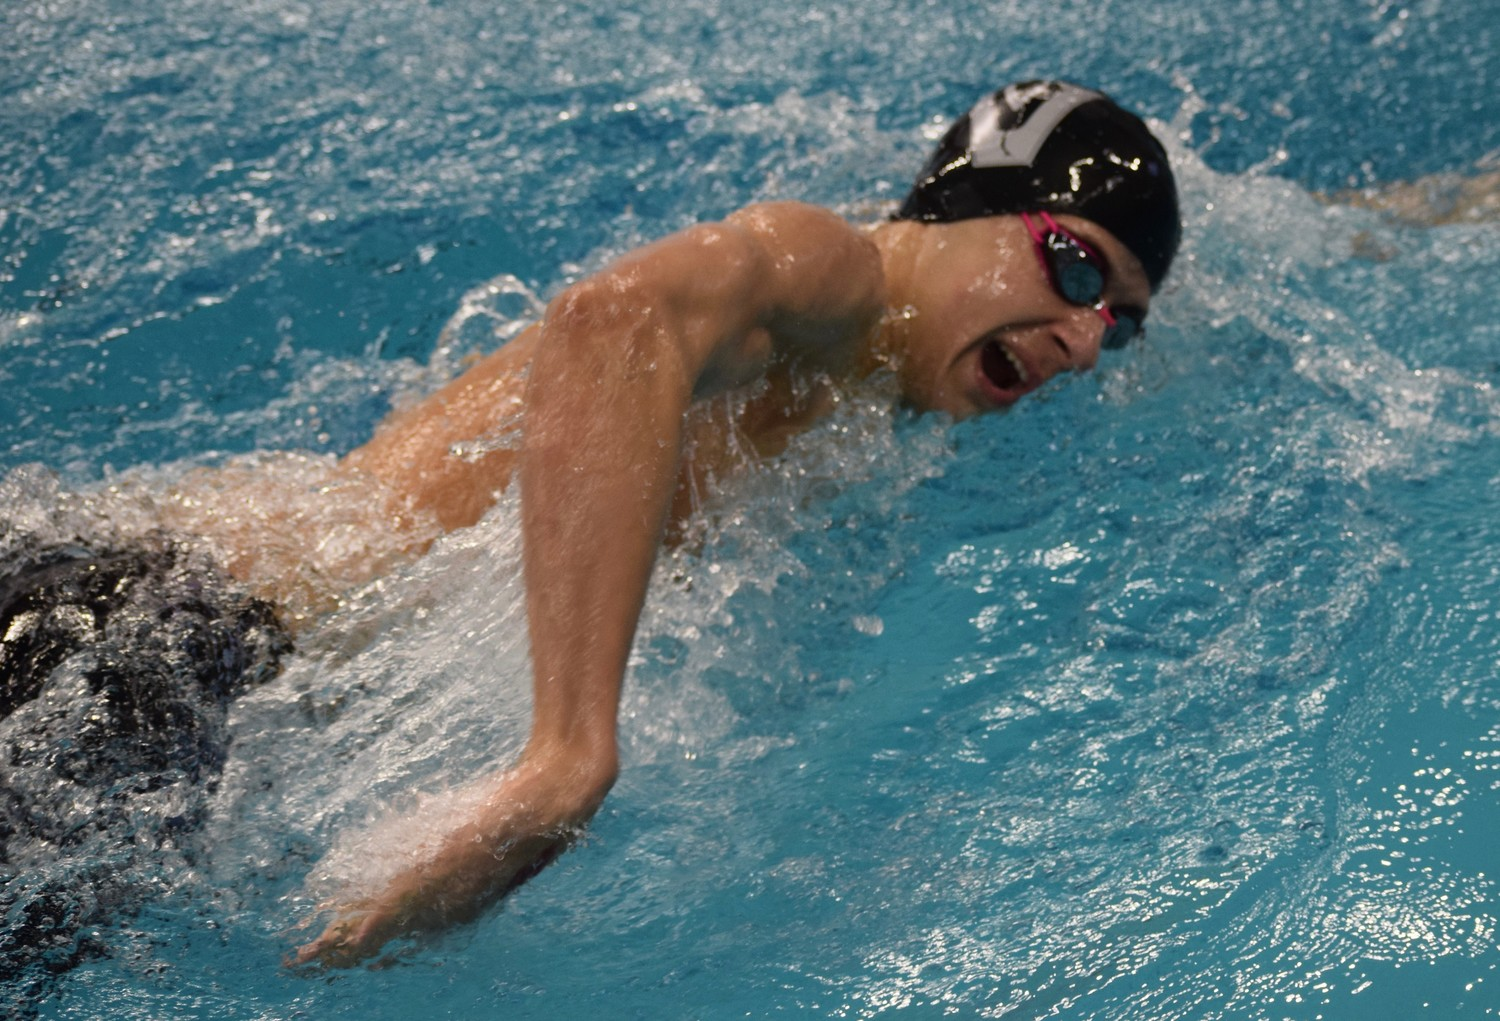 Kevin Hammer swam the 50-yard freestyle in 20.90 and finished in sixth place.